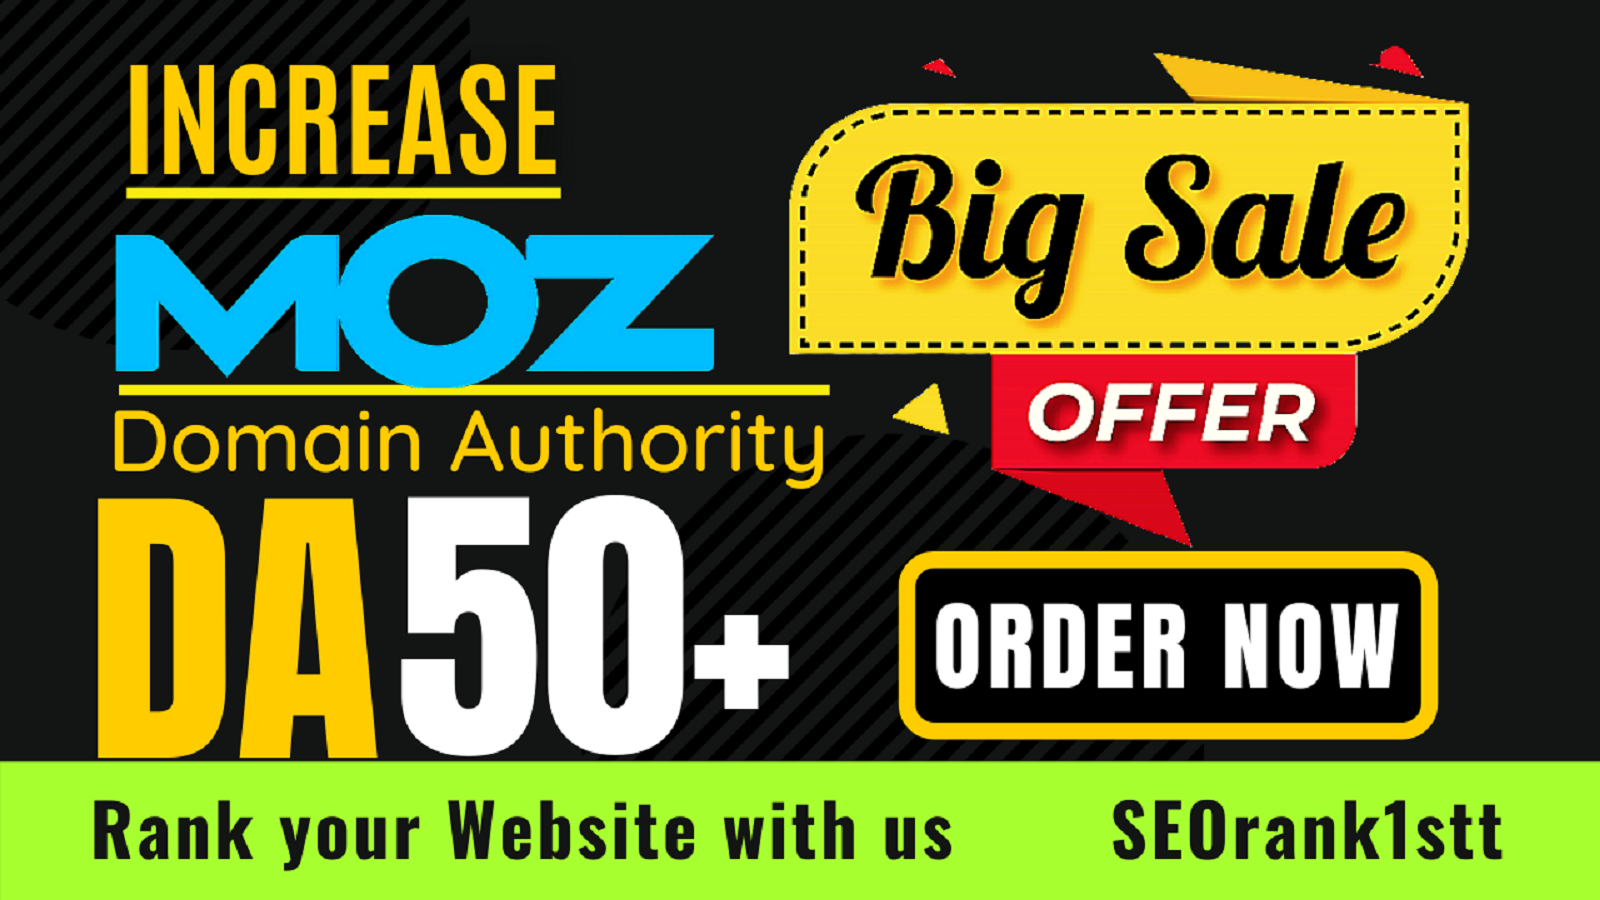 increase moz da domain authority 50 plus